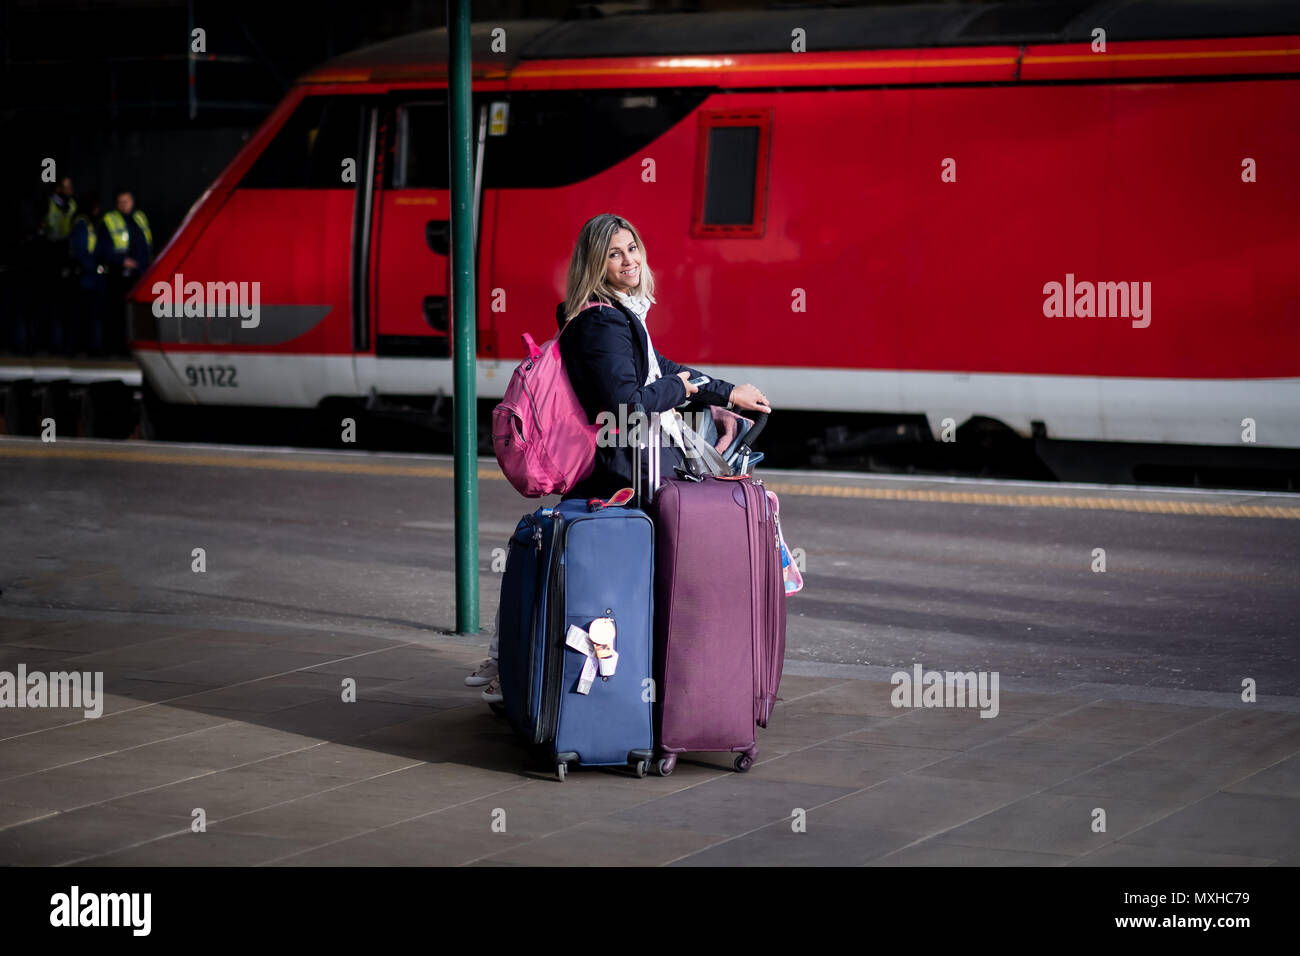 Attractive blond woman looking tired and busy with many bags and luggage at a train station with red train in the backgroud - Stock Image